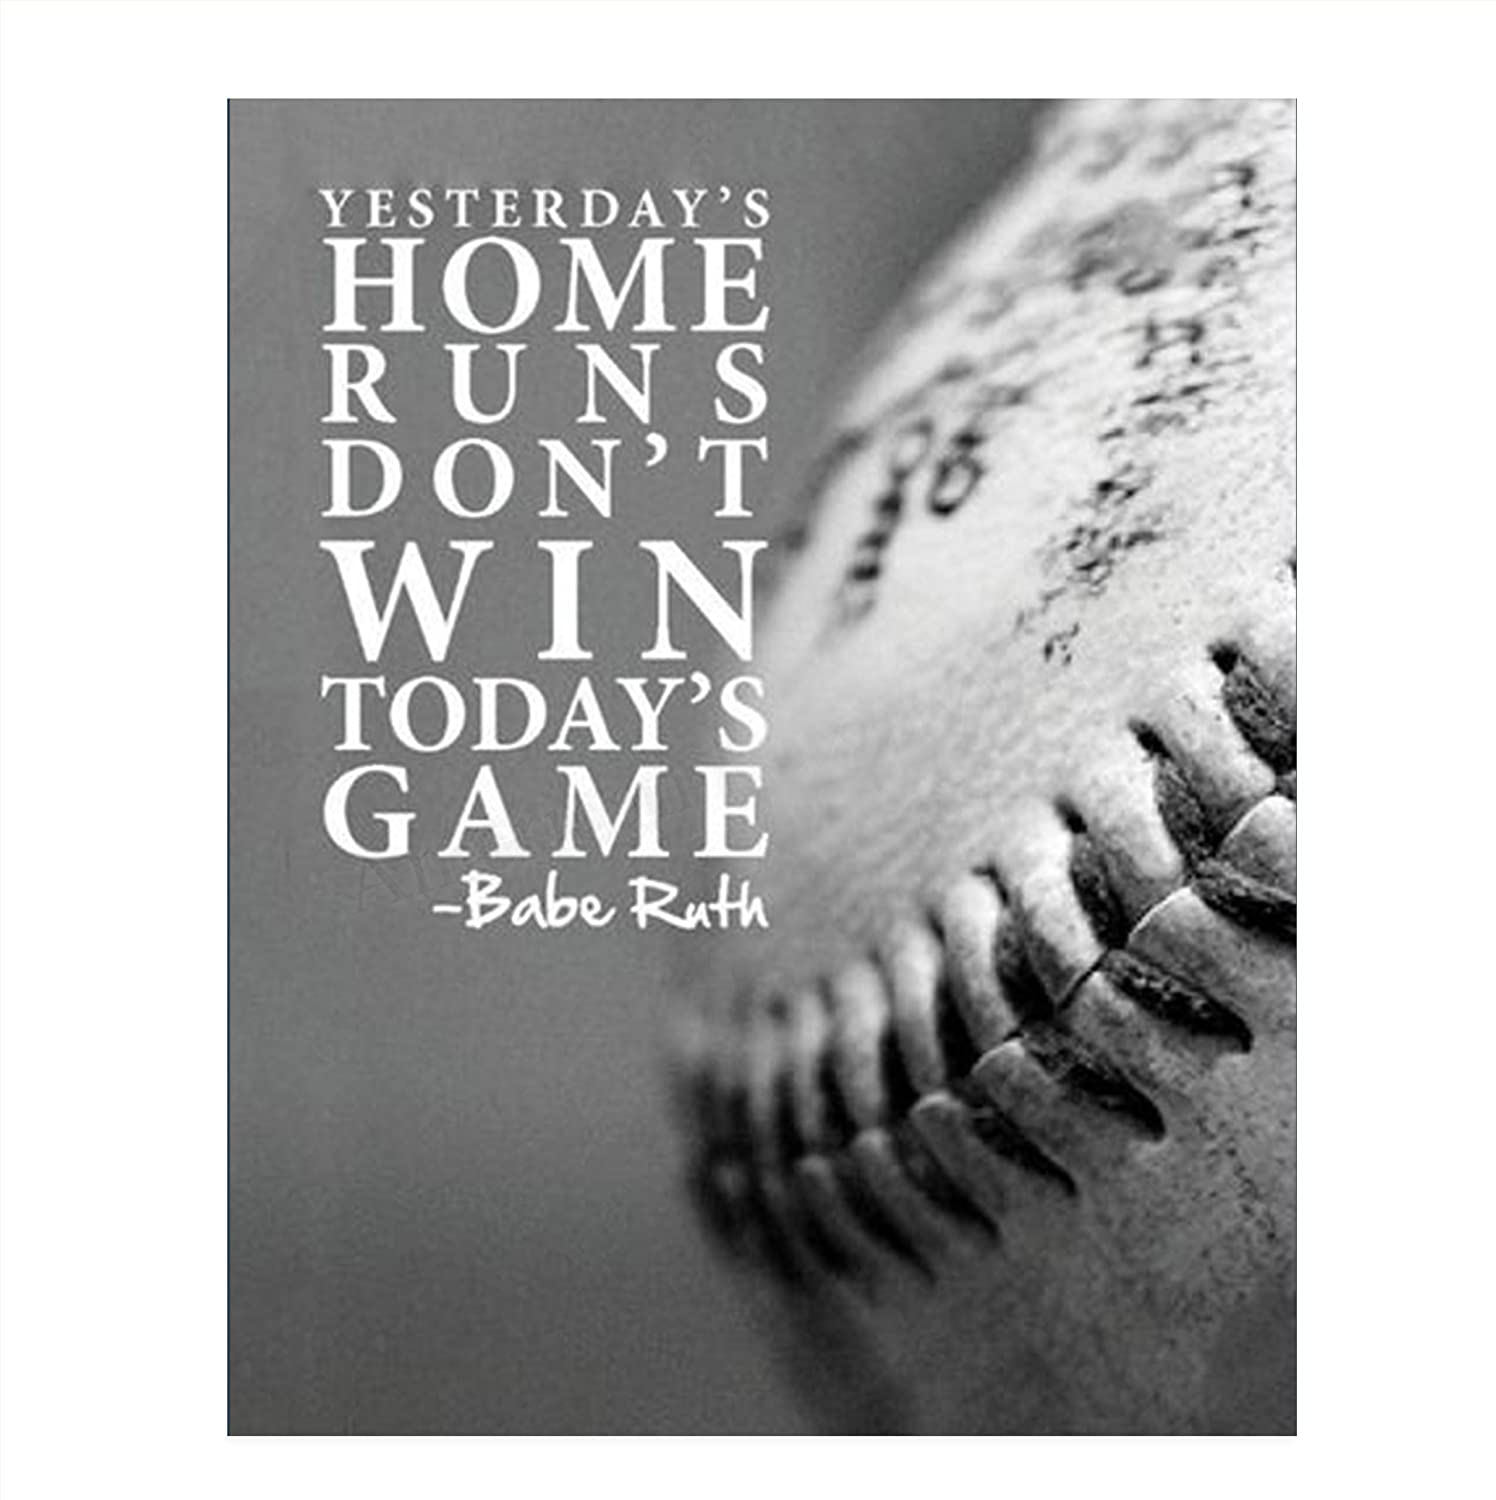 "Babe Ruth Quotes-""Yesterdays Home Runs Don't Win Today's Game""-8 x 10""-Motivational Poster Print-Ready to Frame. Baseball Typographic Wall Art. Home-Office Décor. Perfect for Locker-Gym-Training Room."